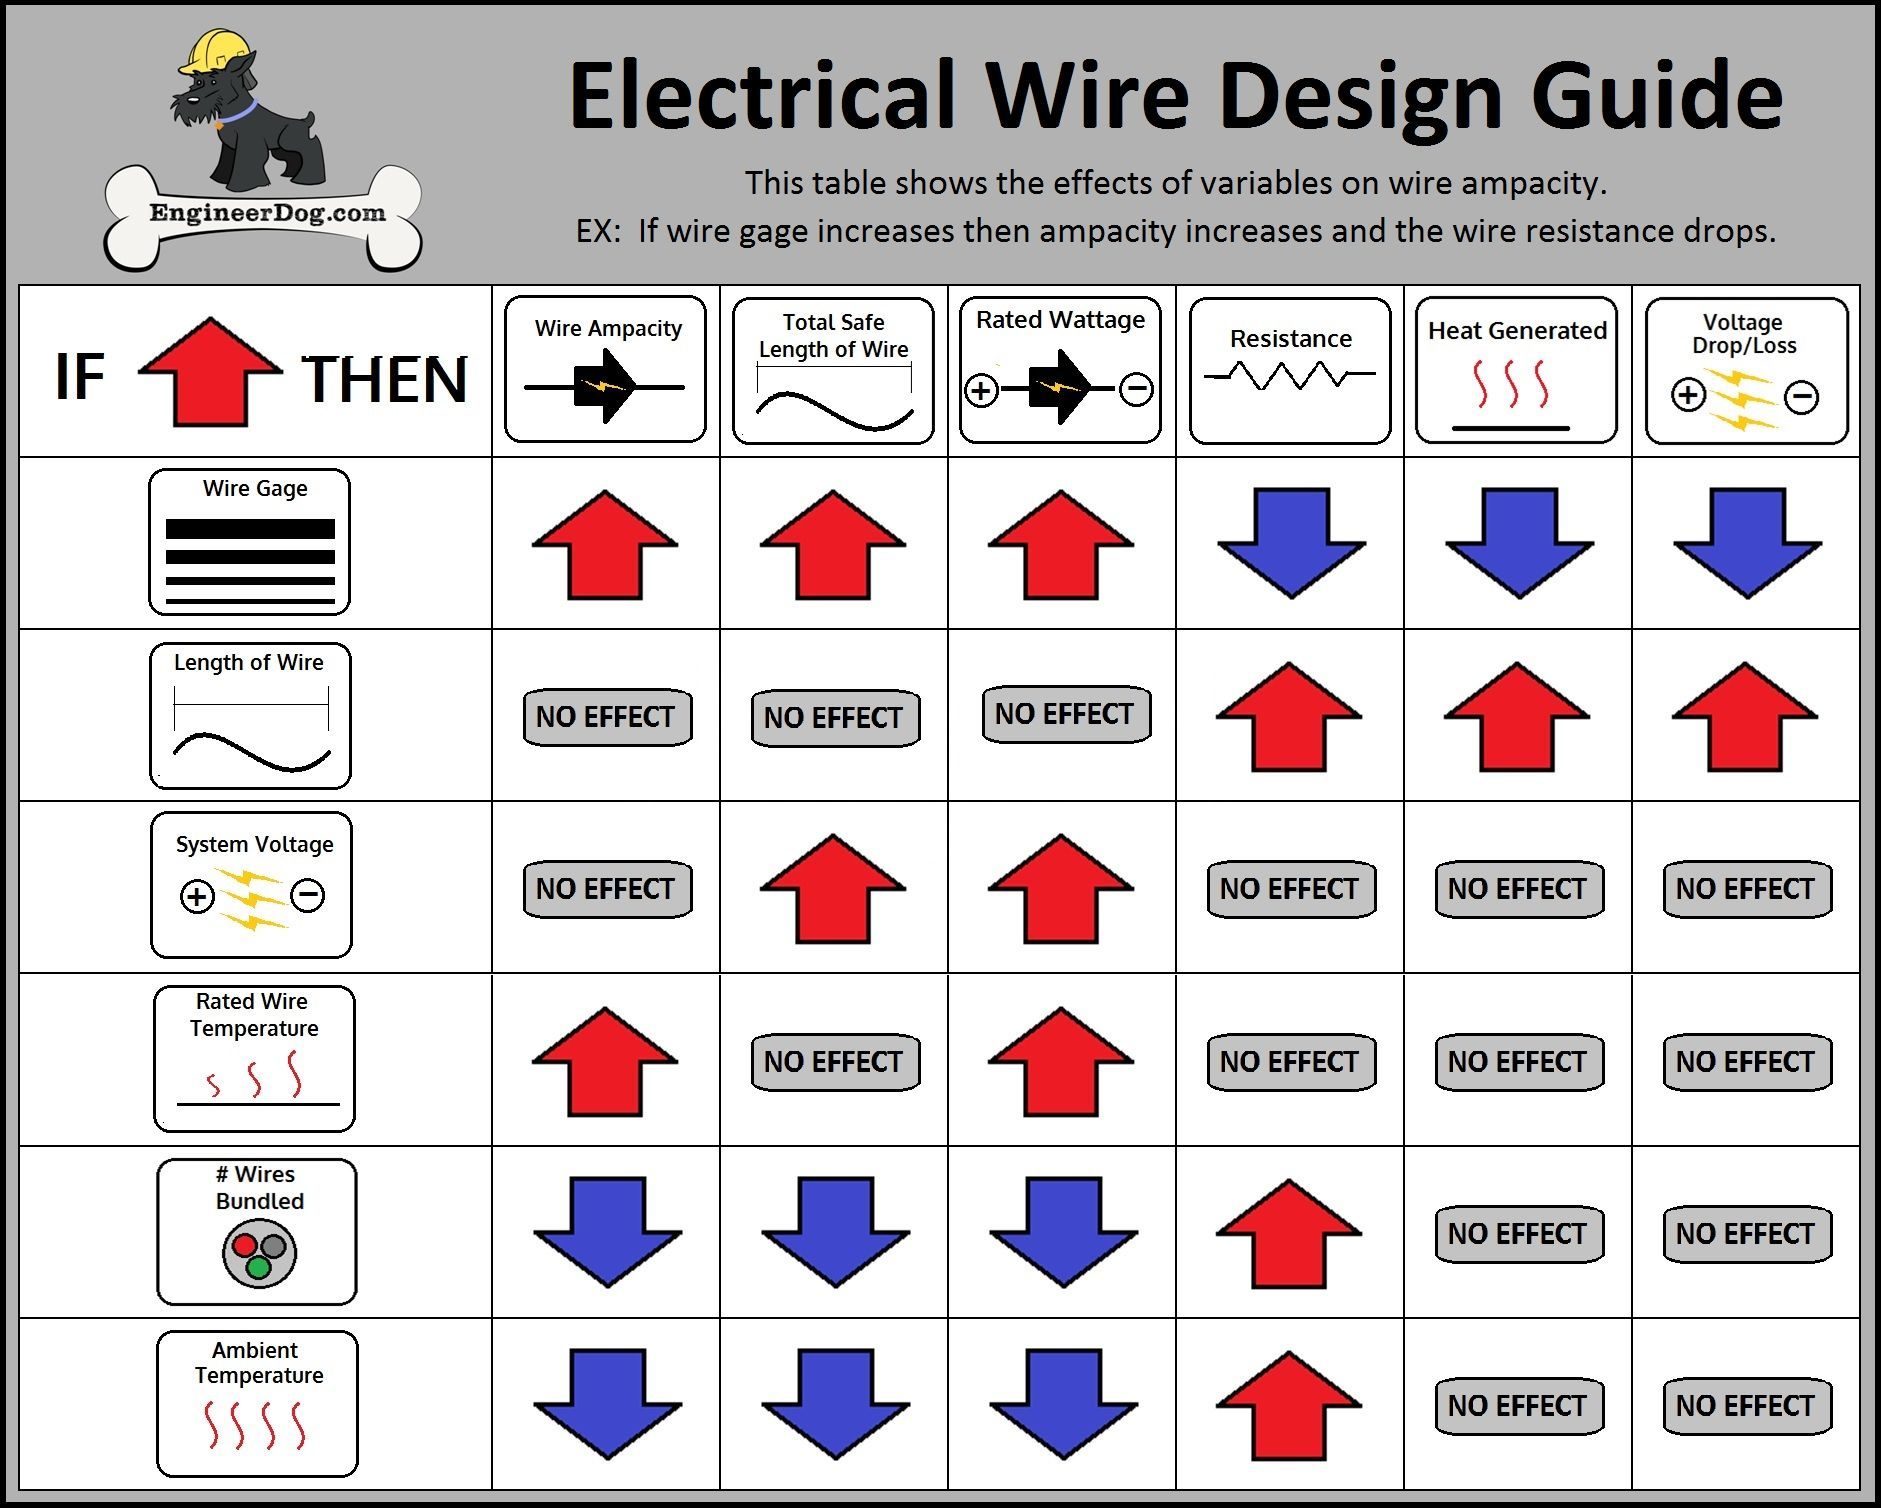 Electrical wire design guide see website for free wire gauge electrical wire design guide see website for free wire gauge calculator guide keyboard keysfo